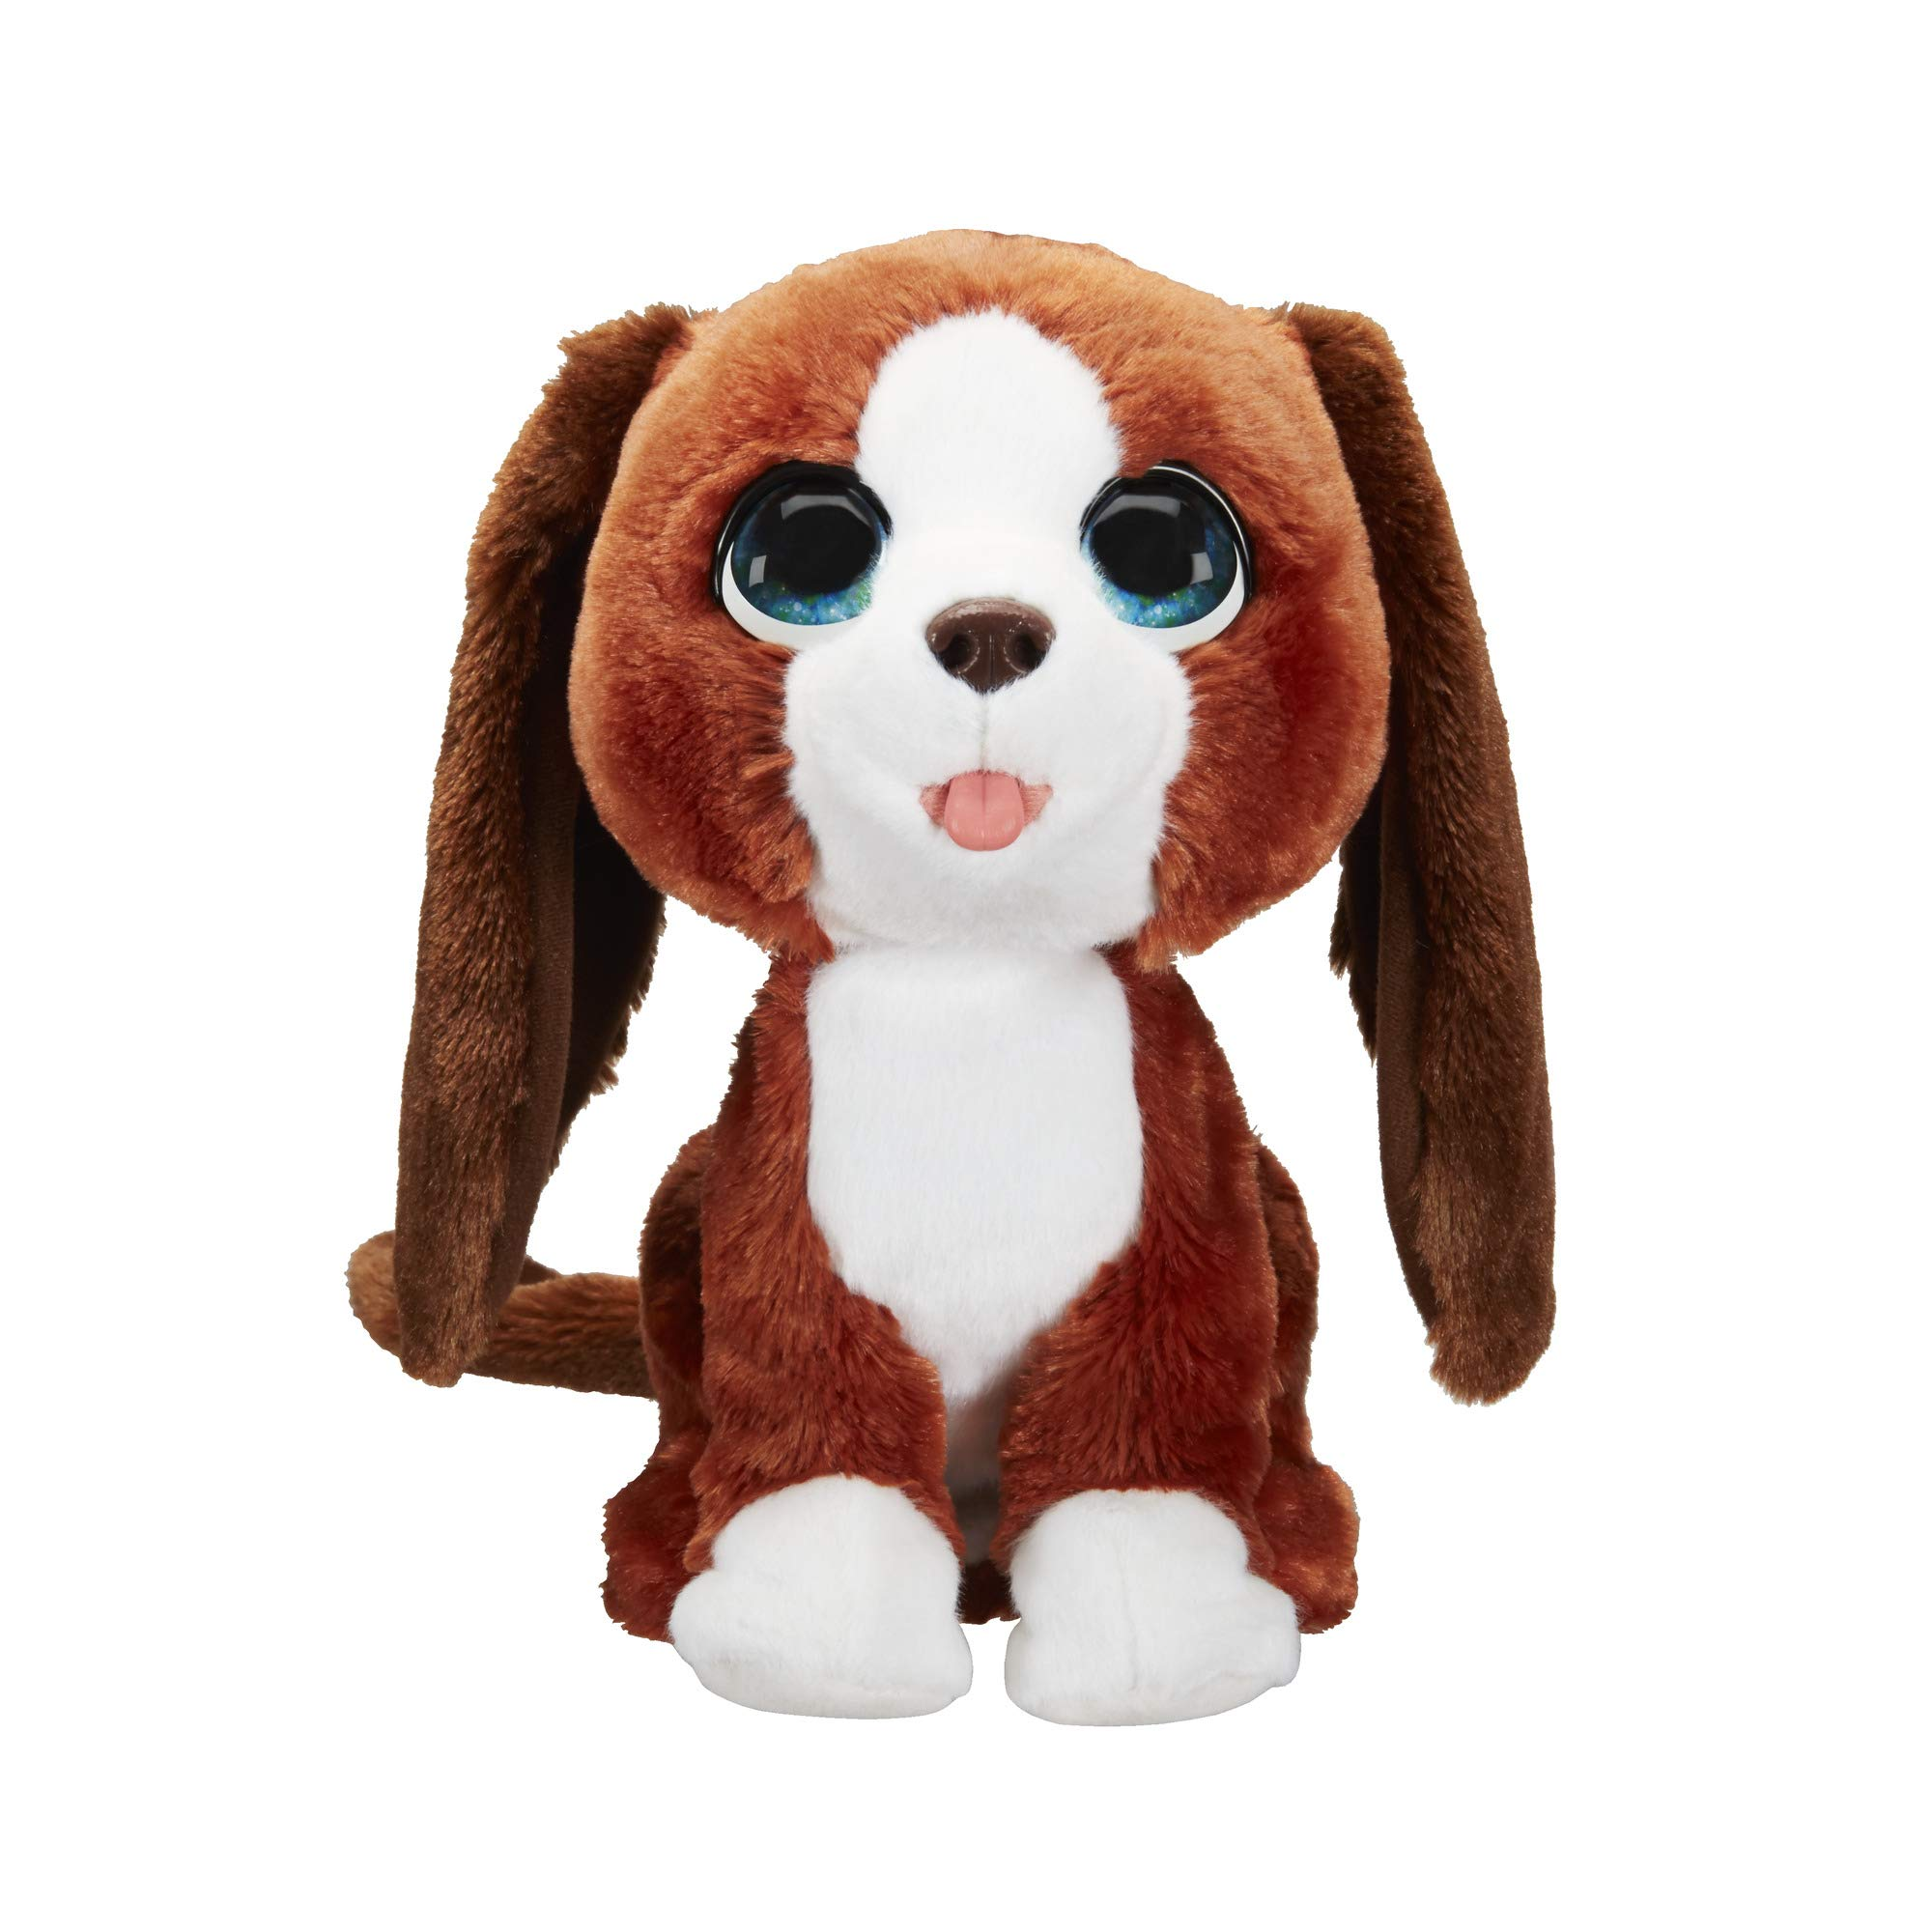 FurReal Howlin' Howie Interactive Plush Pet Toy, 25+ Sound-&-Motion Combinations, Ages 4 & Up by FurReal (Image #1)